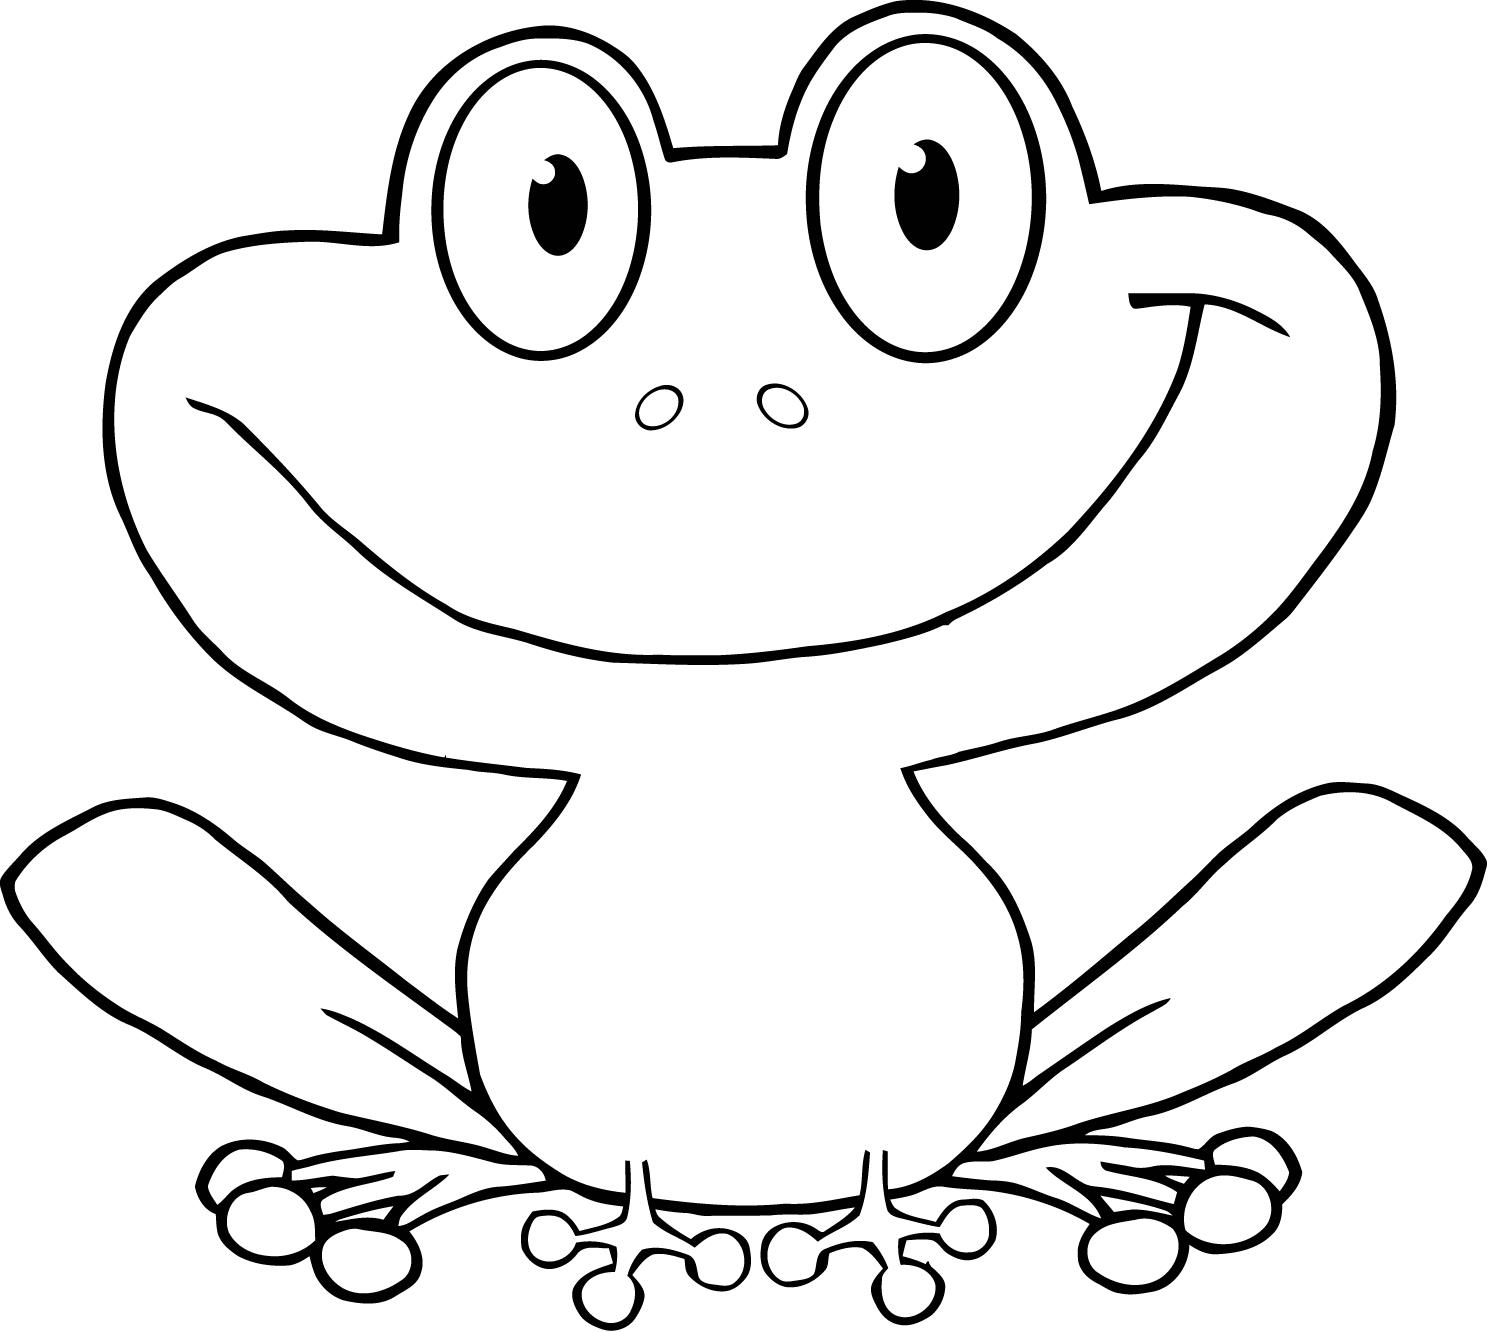 1488x1332 Cartoon Frog Drawing How To Draw A Cartoon Frog Free Download